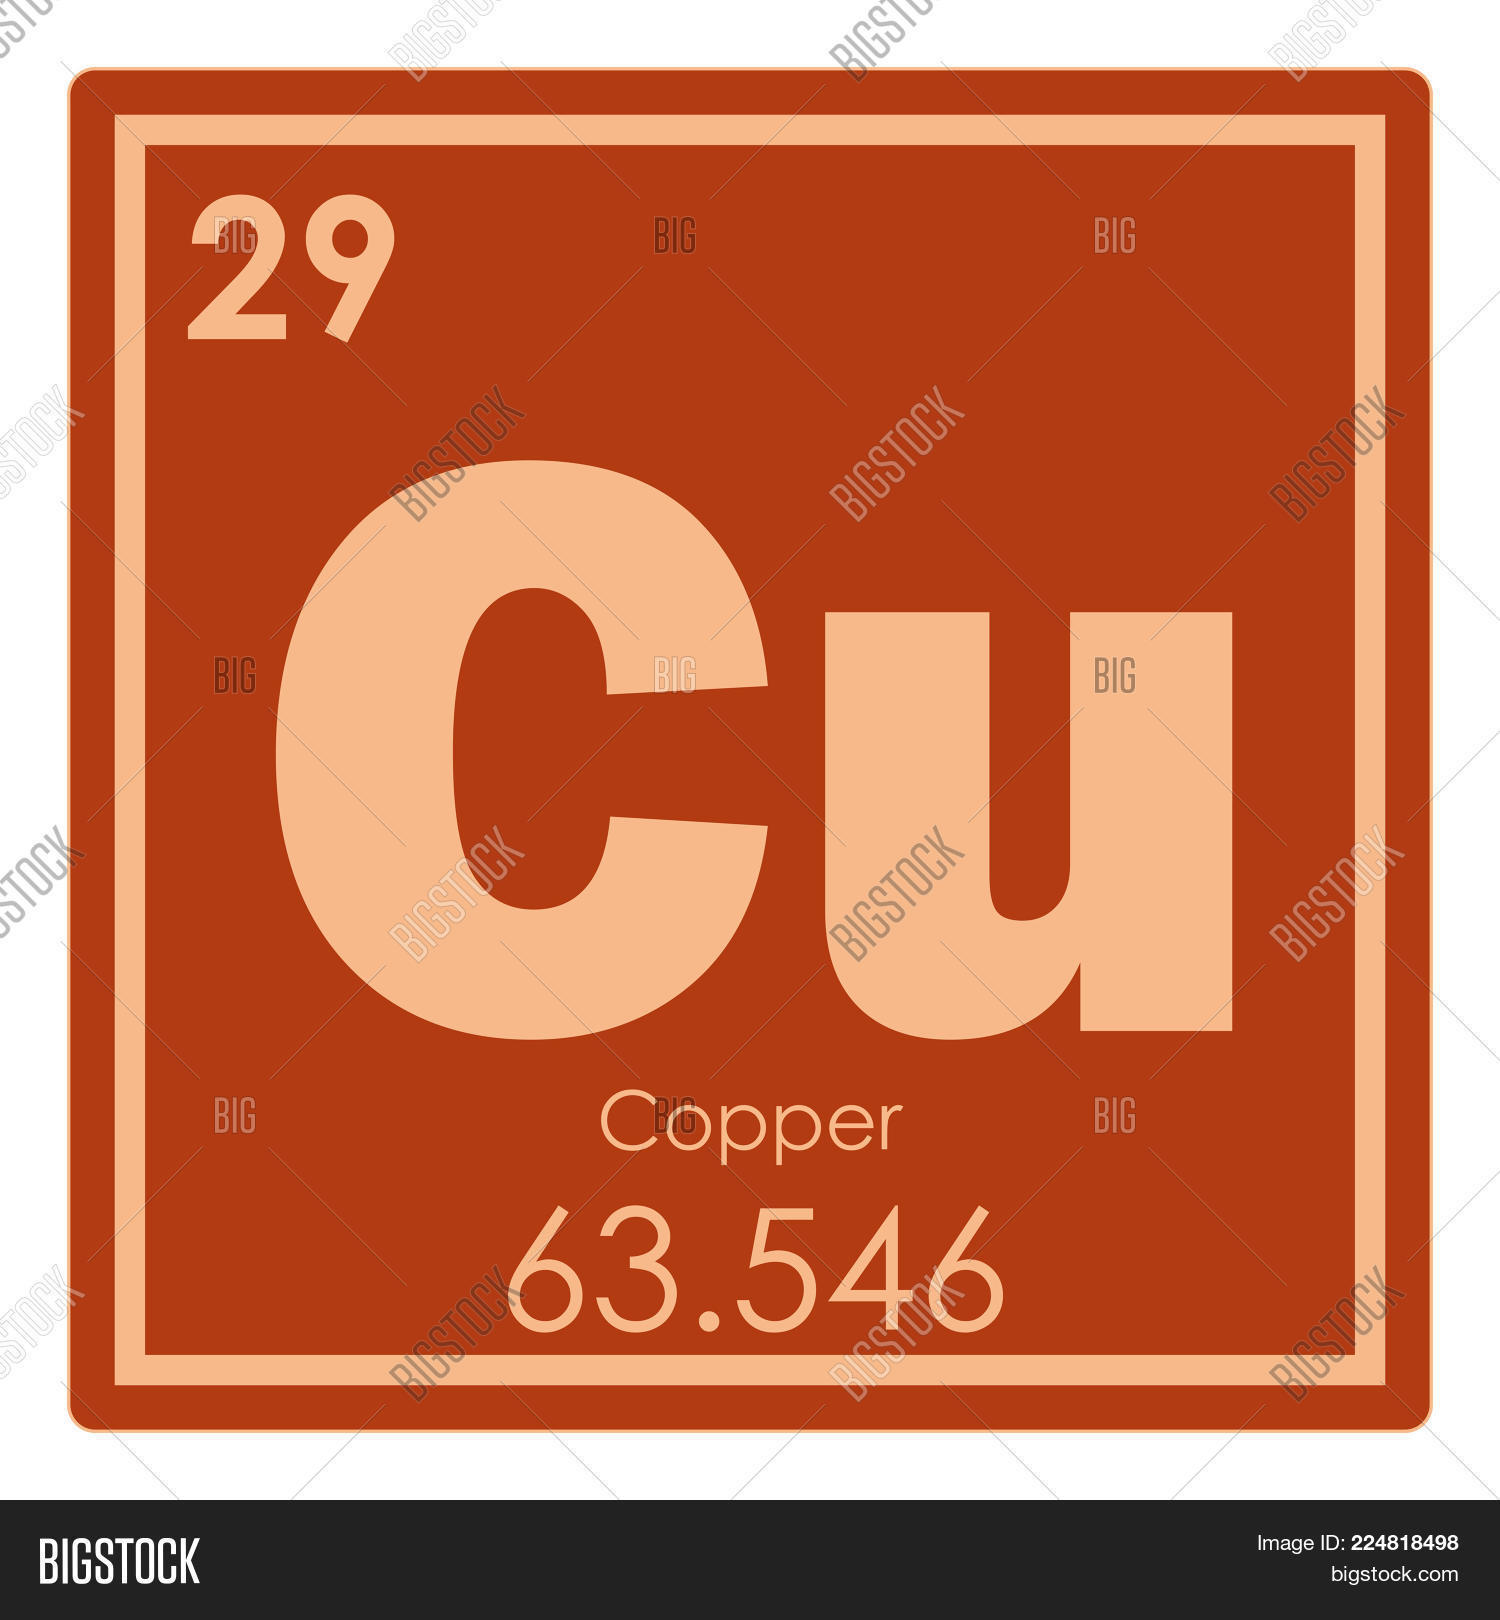 copper chemical element periodic table science symbol - Periodic Table Copper Symbol